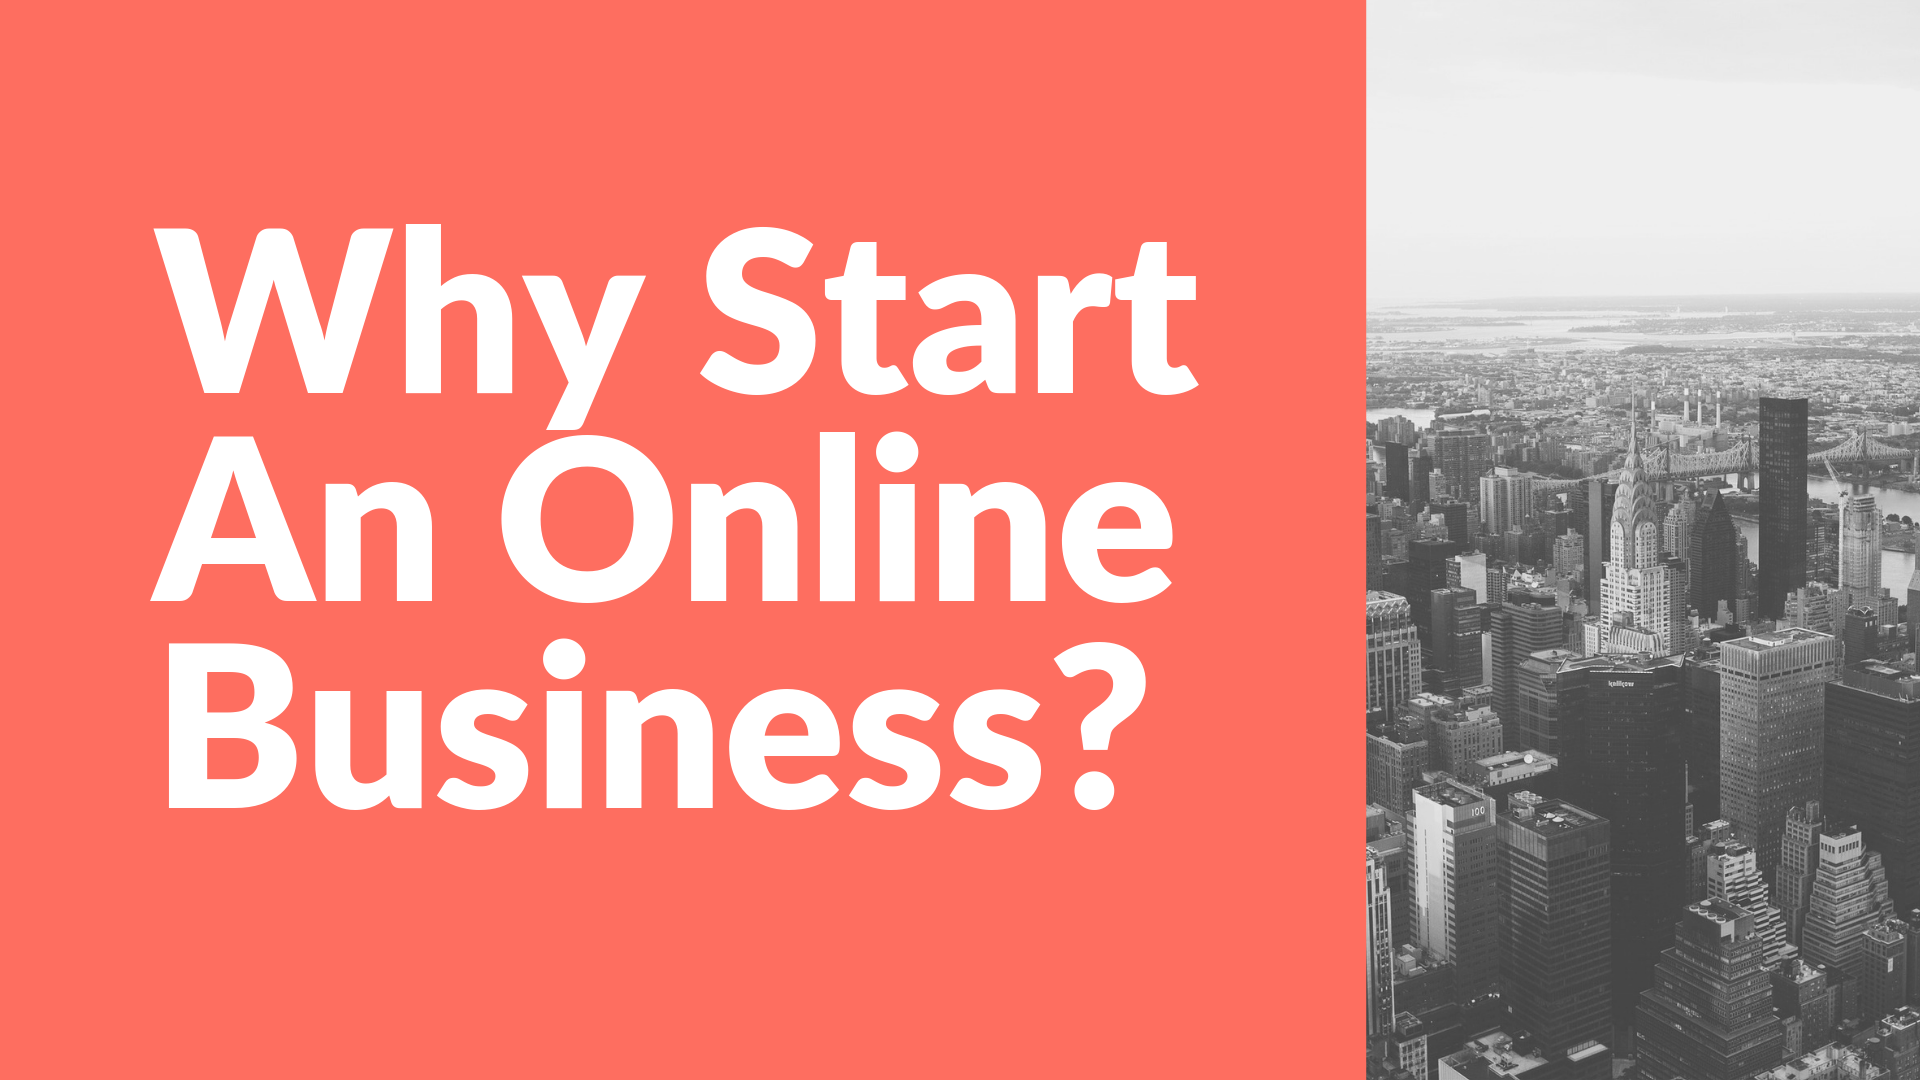 Why Start An Online Business?